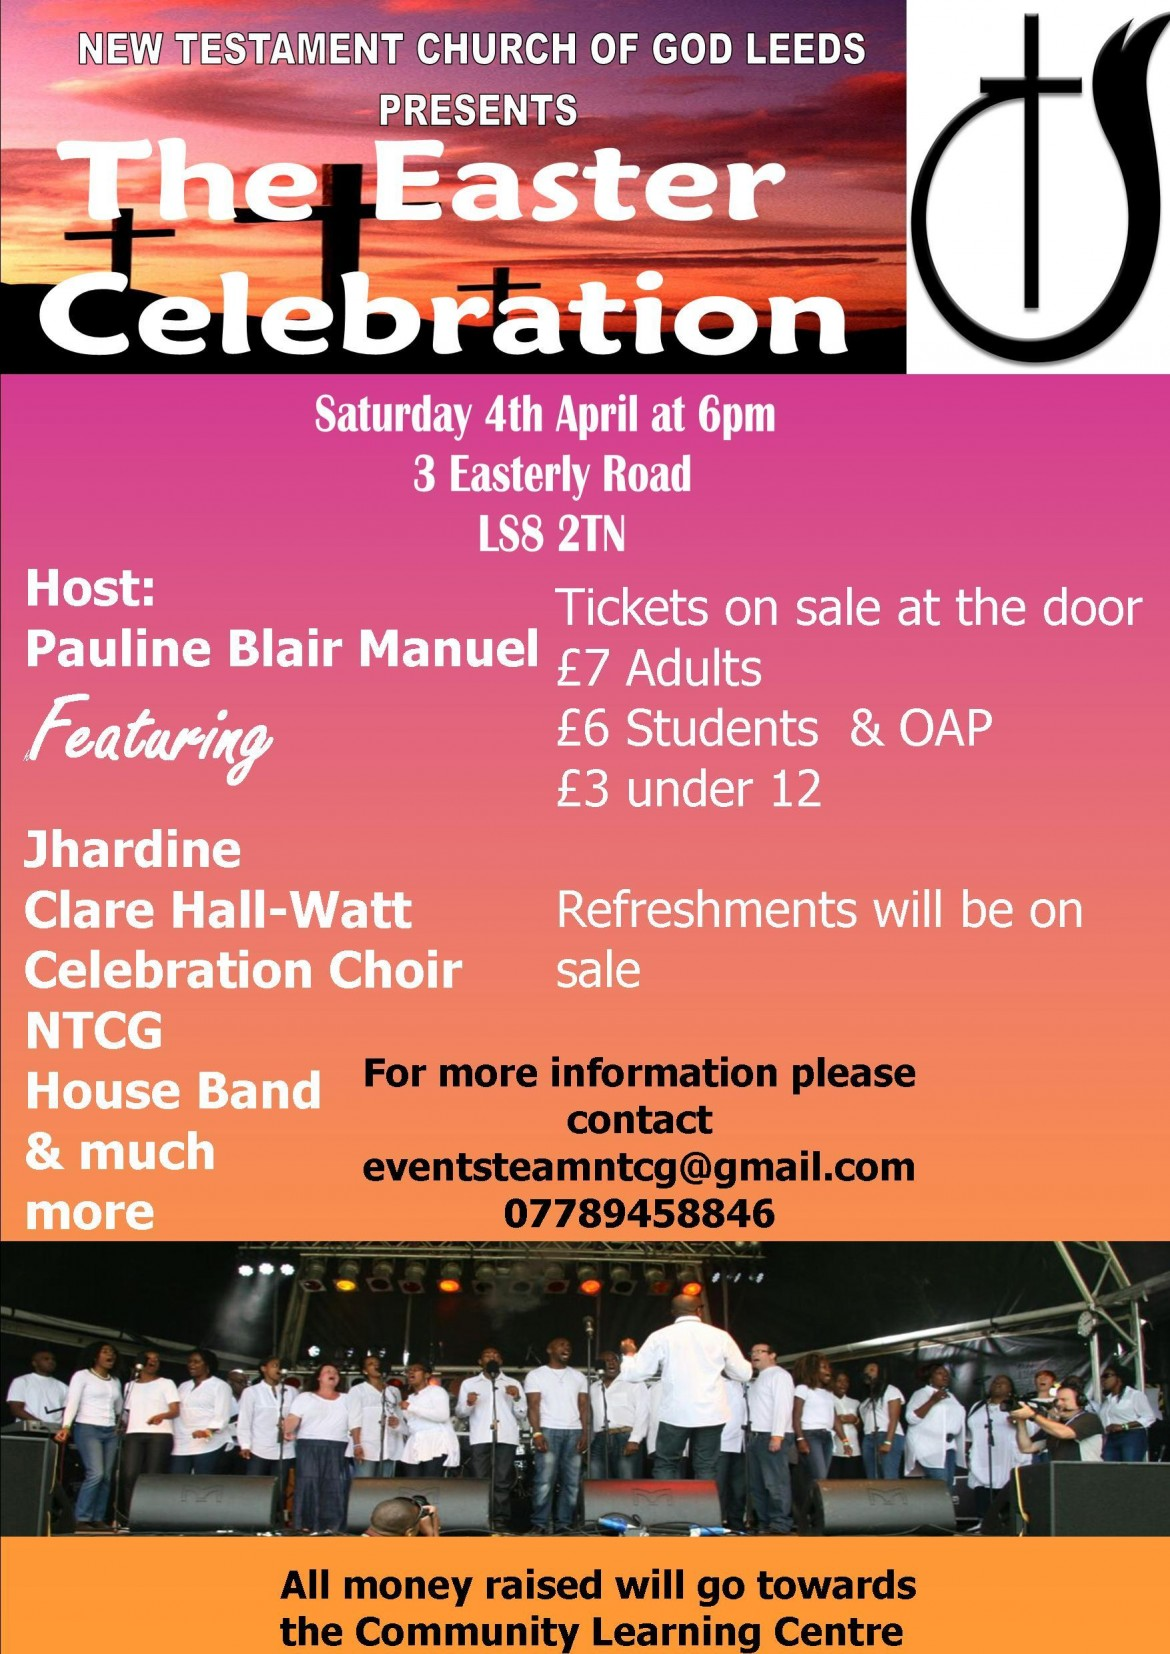 New Testament Church Of God Leeds Presents The Easter Celebration Saturday 4th April 2015